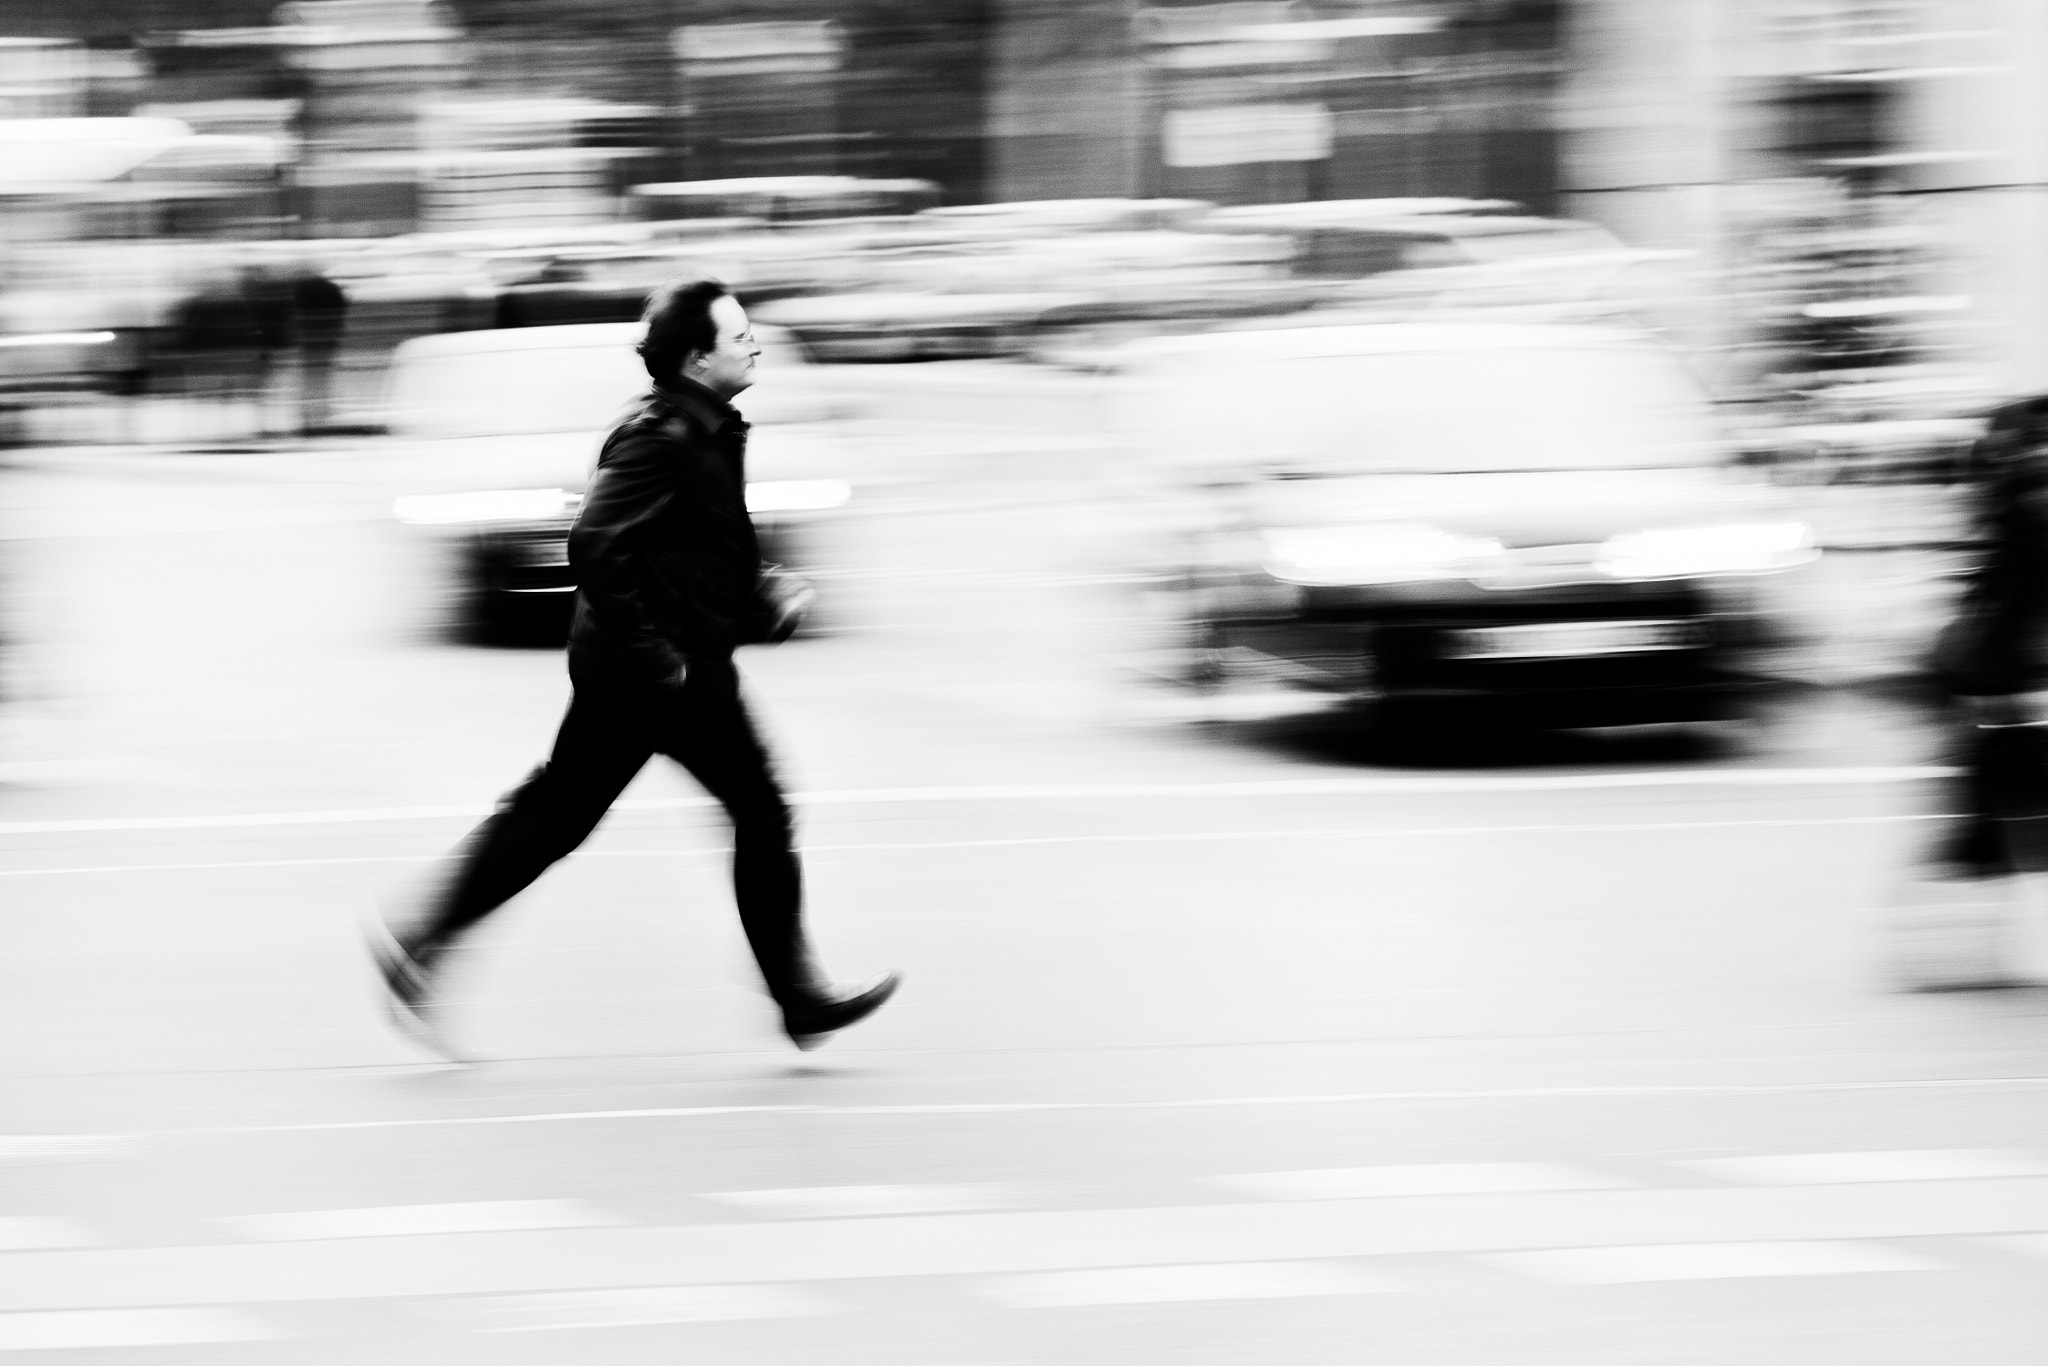 Photograph city runner by Christian Müller on 500px